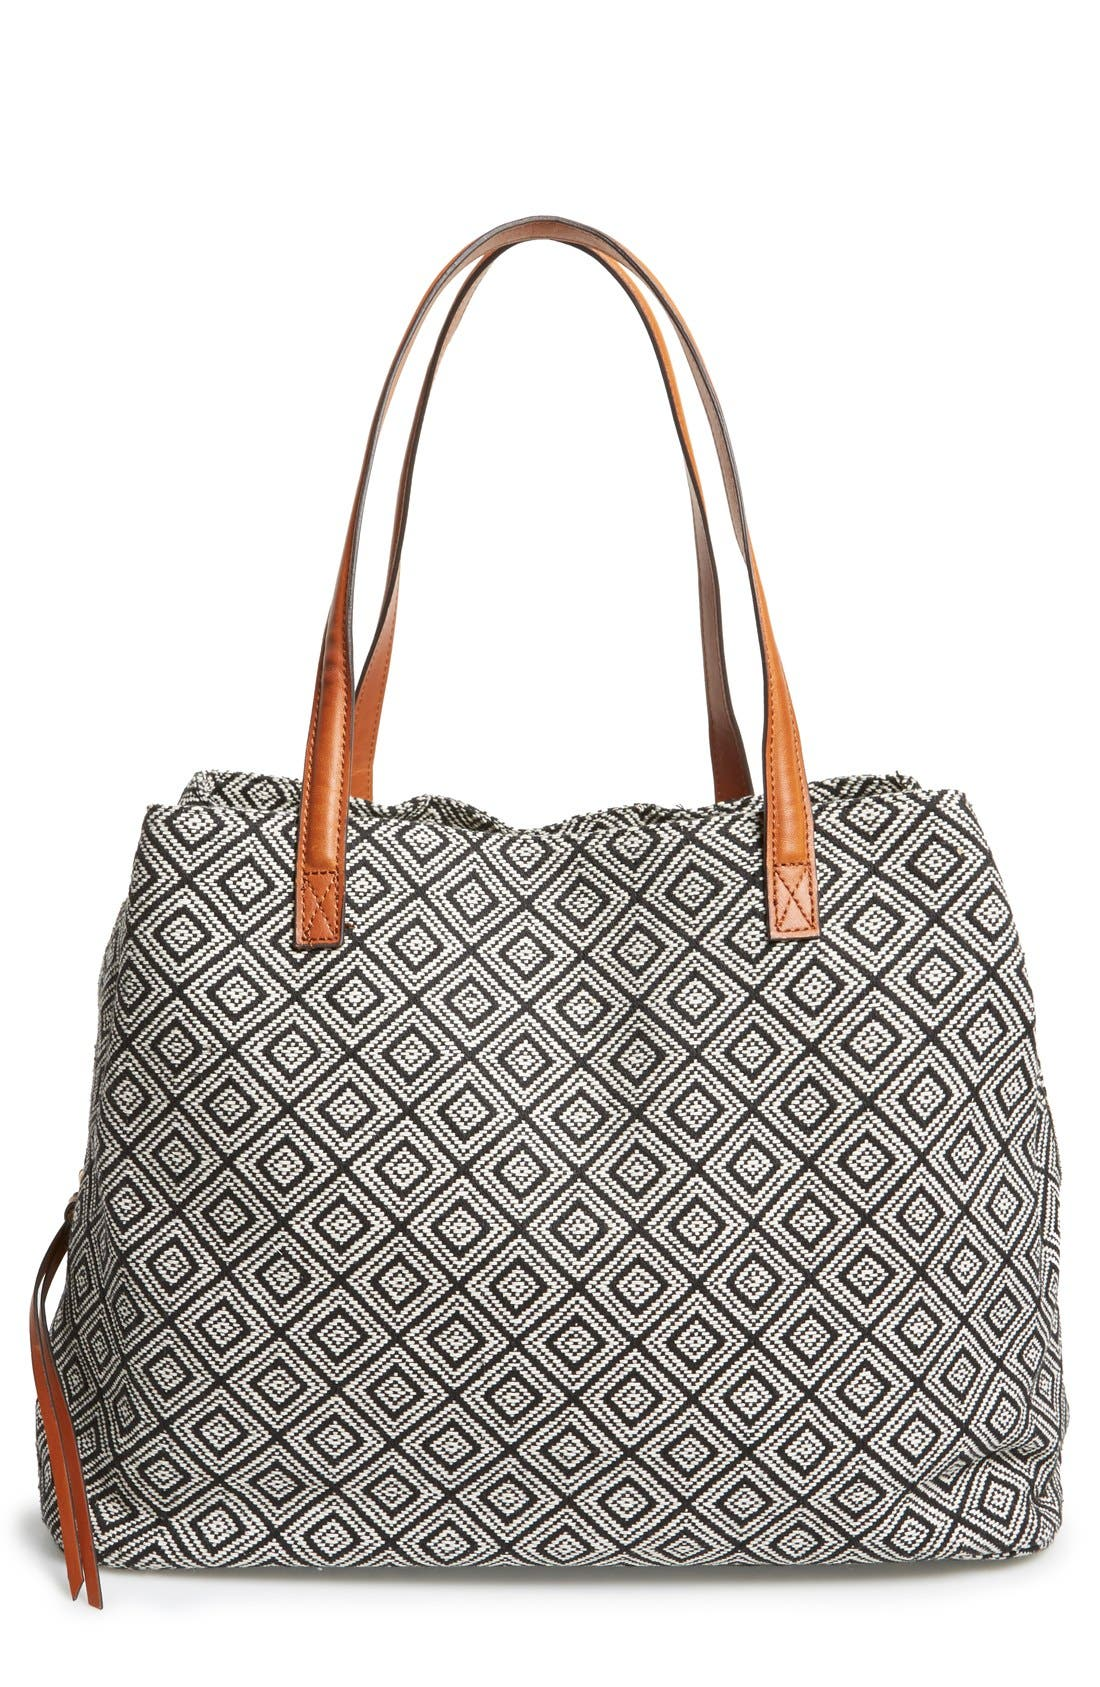 'Oversize Millie' Tote,                             Main thumbnail 1, color,                             Black White Geo